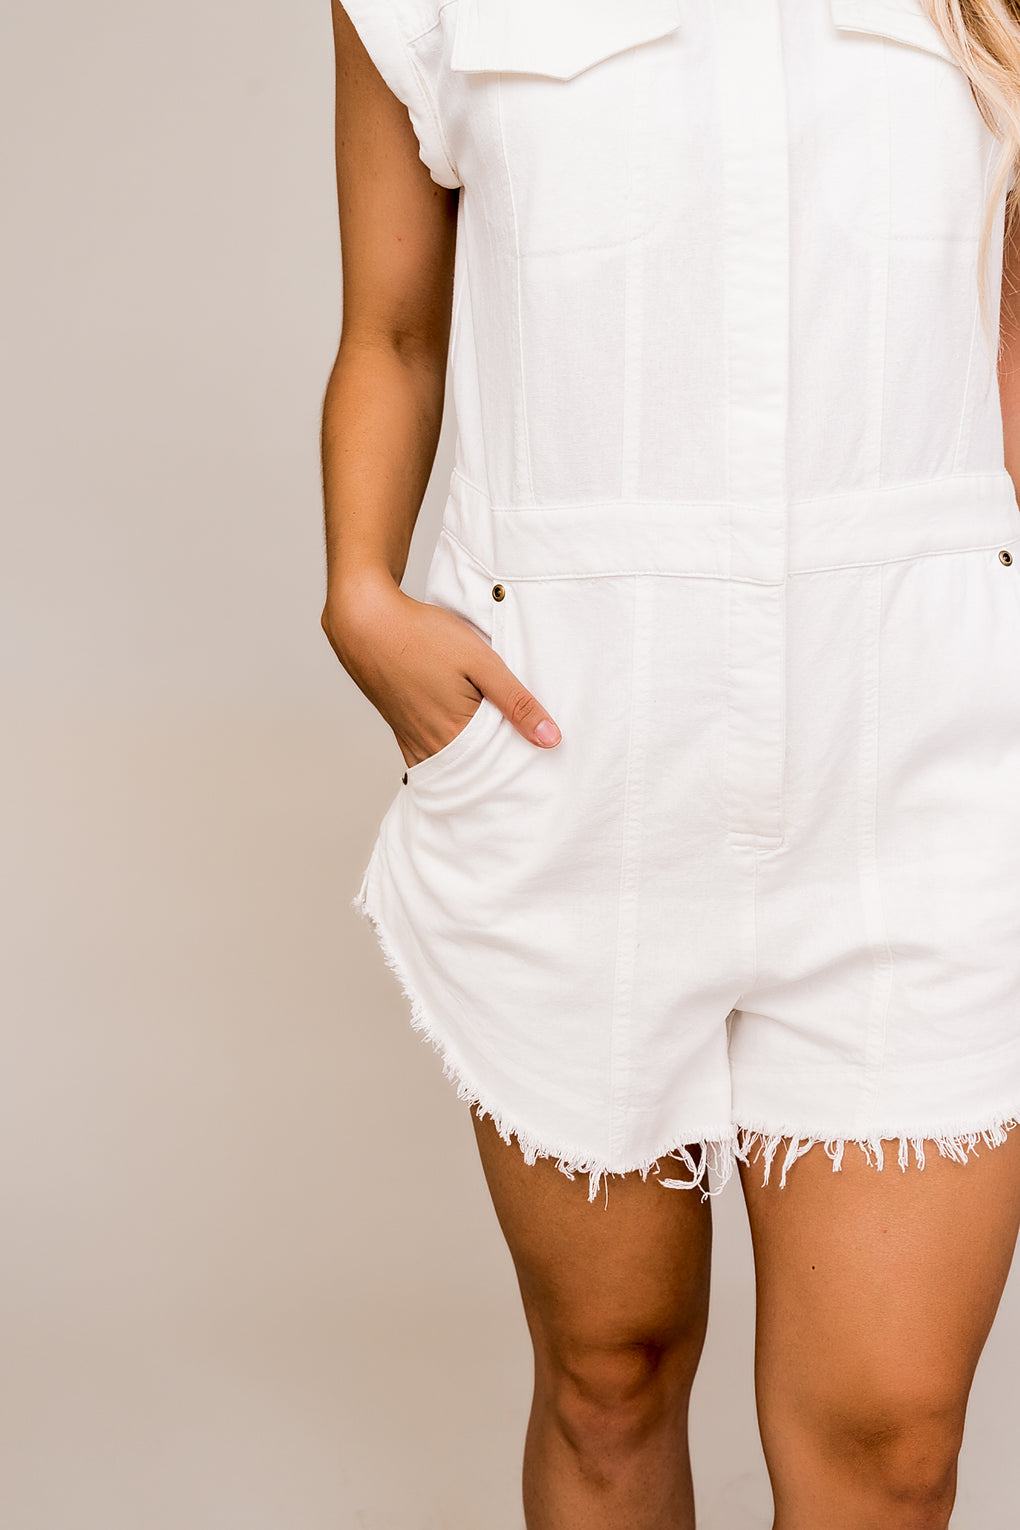 Warm Breeze Boyfriend Romper